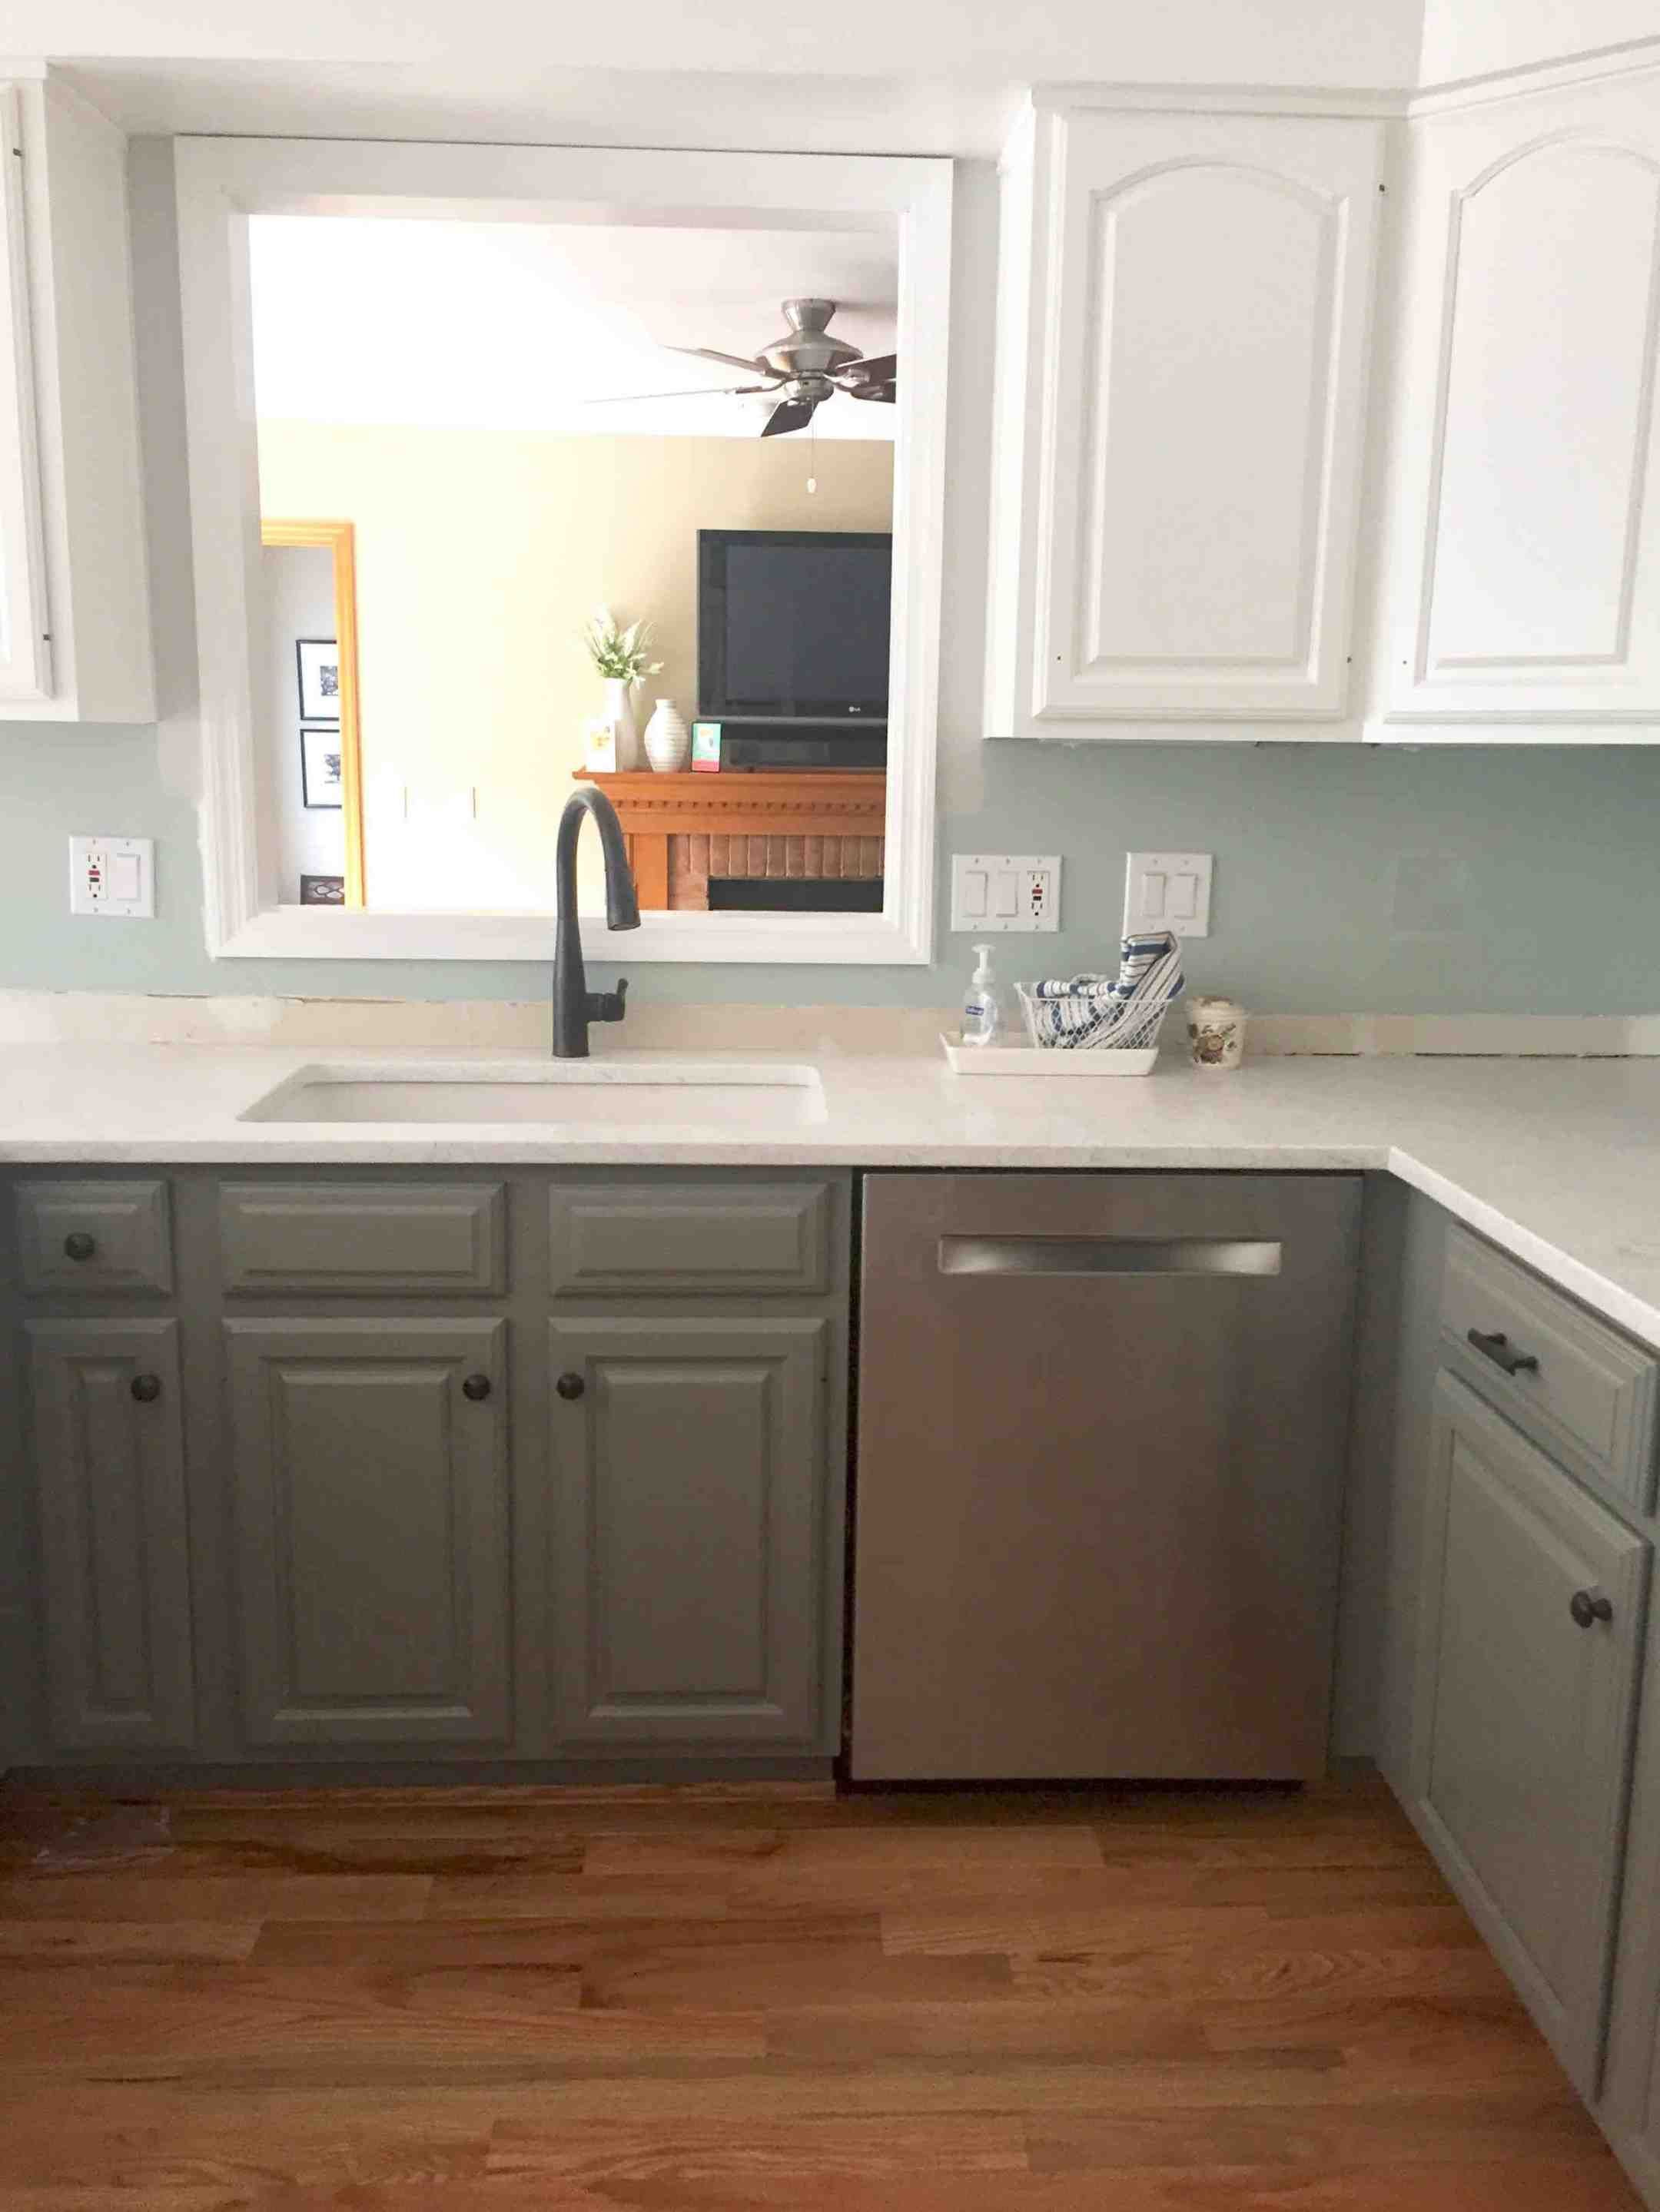 simply white and chelsea gray kitchen in 2020 with images kitchen remodel small kitchen on kitchen cabinets grey and white id=21981